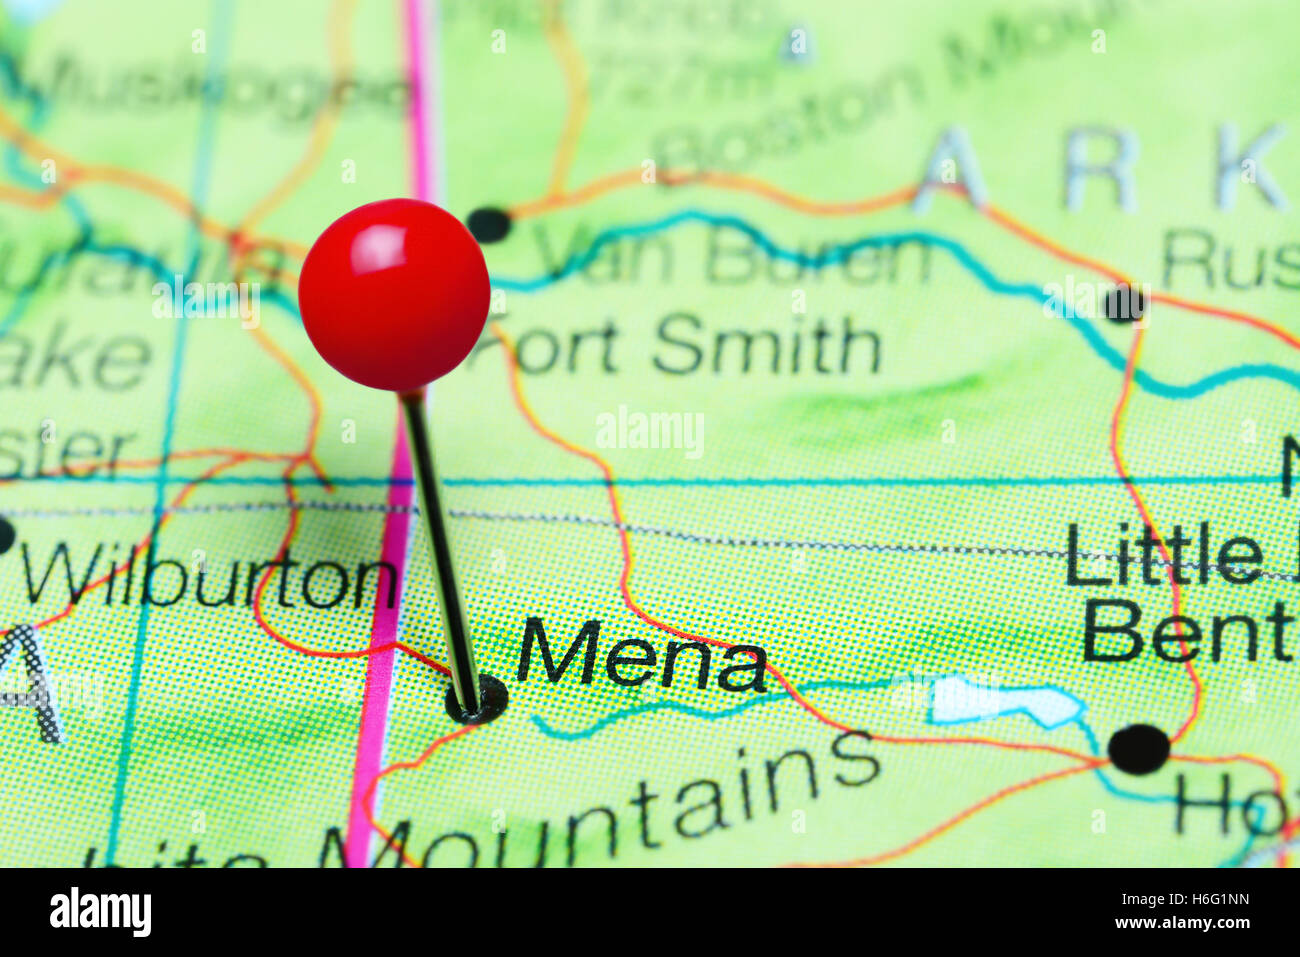 Mena Pinned On A Map Of Arkansas USA Stock Photo Royalty Free - A map of arkansas